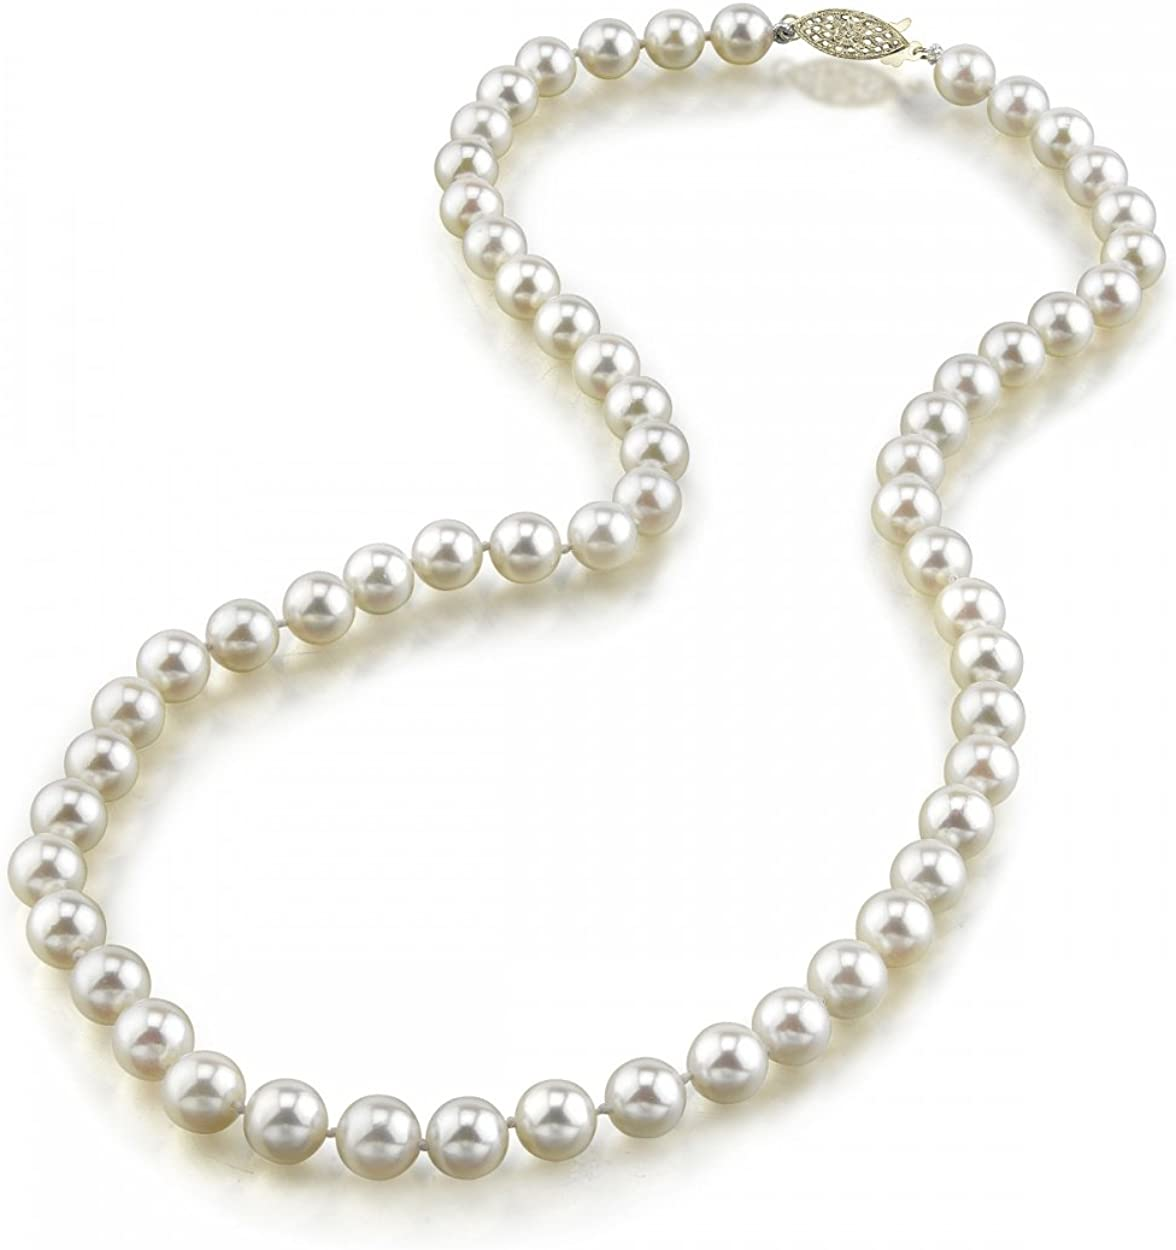 THE PEARL SOURCE 14K Gold 6.0-6.5mm Round Genuine White Japanese Akoya Saltwater Cultured Pearl Necklace for Women